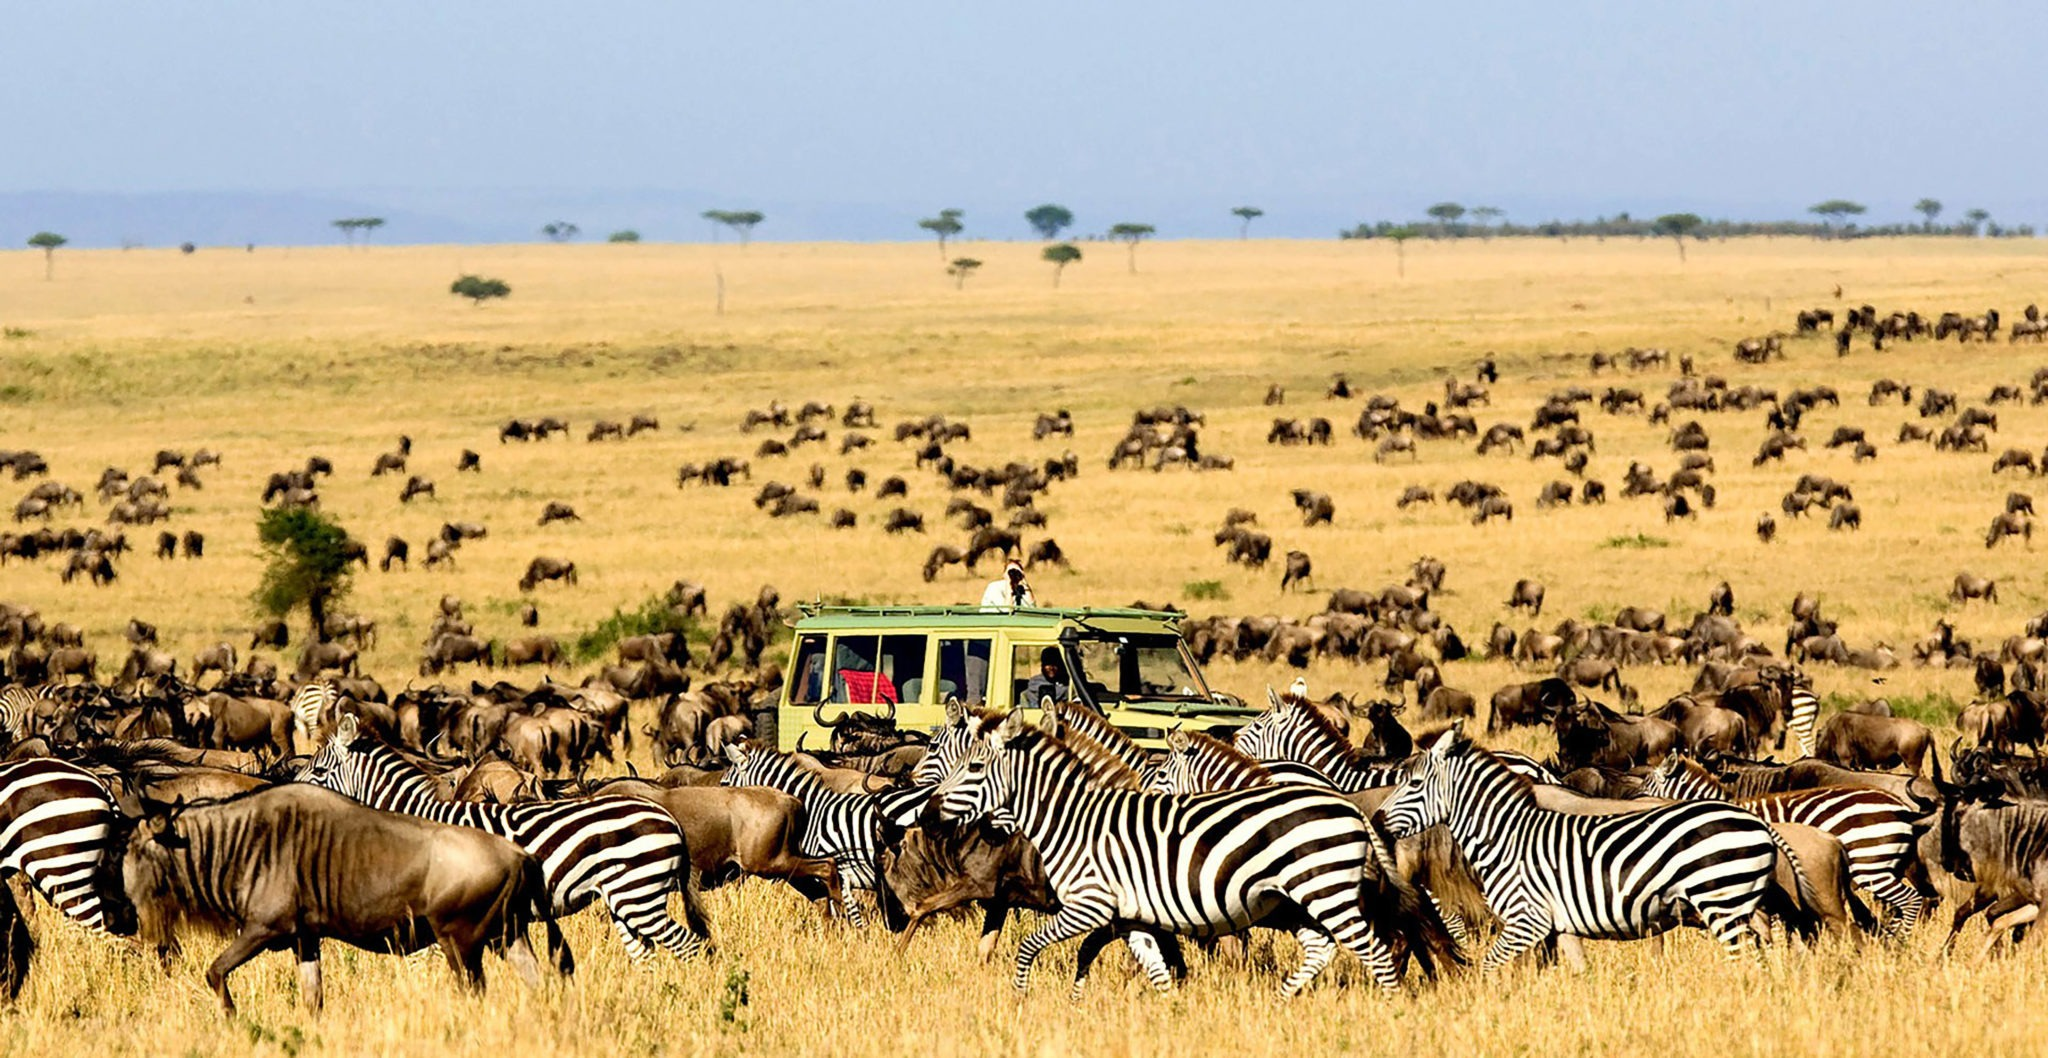 Wildebeest-Migration-Safari-Crossing-Mara-River-Safari-Tanzania-Mara